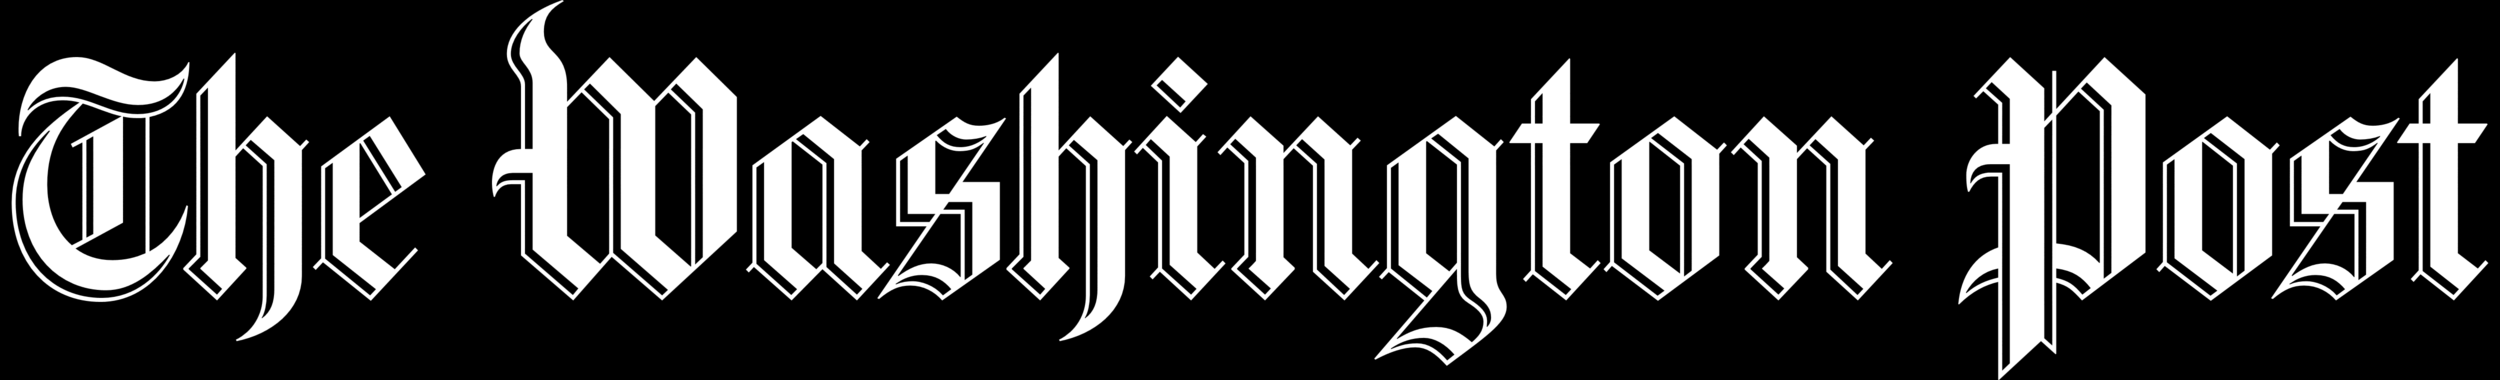 The_Washington_Post_logo_black.png